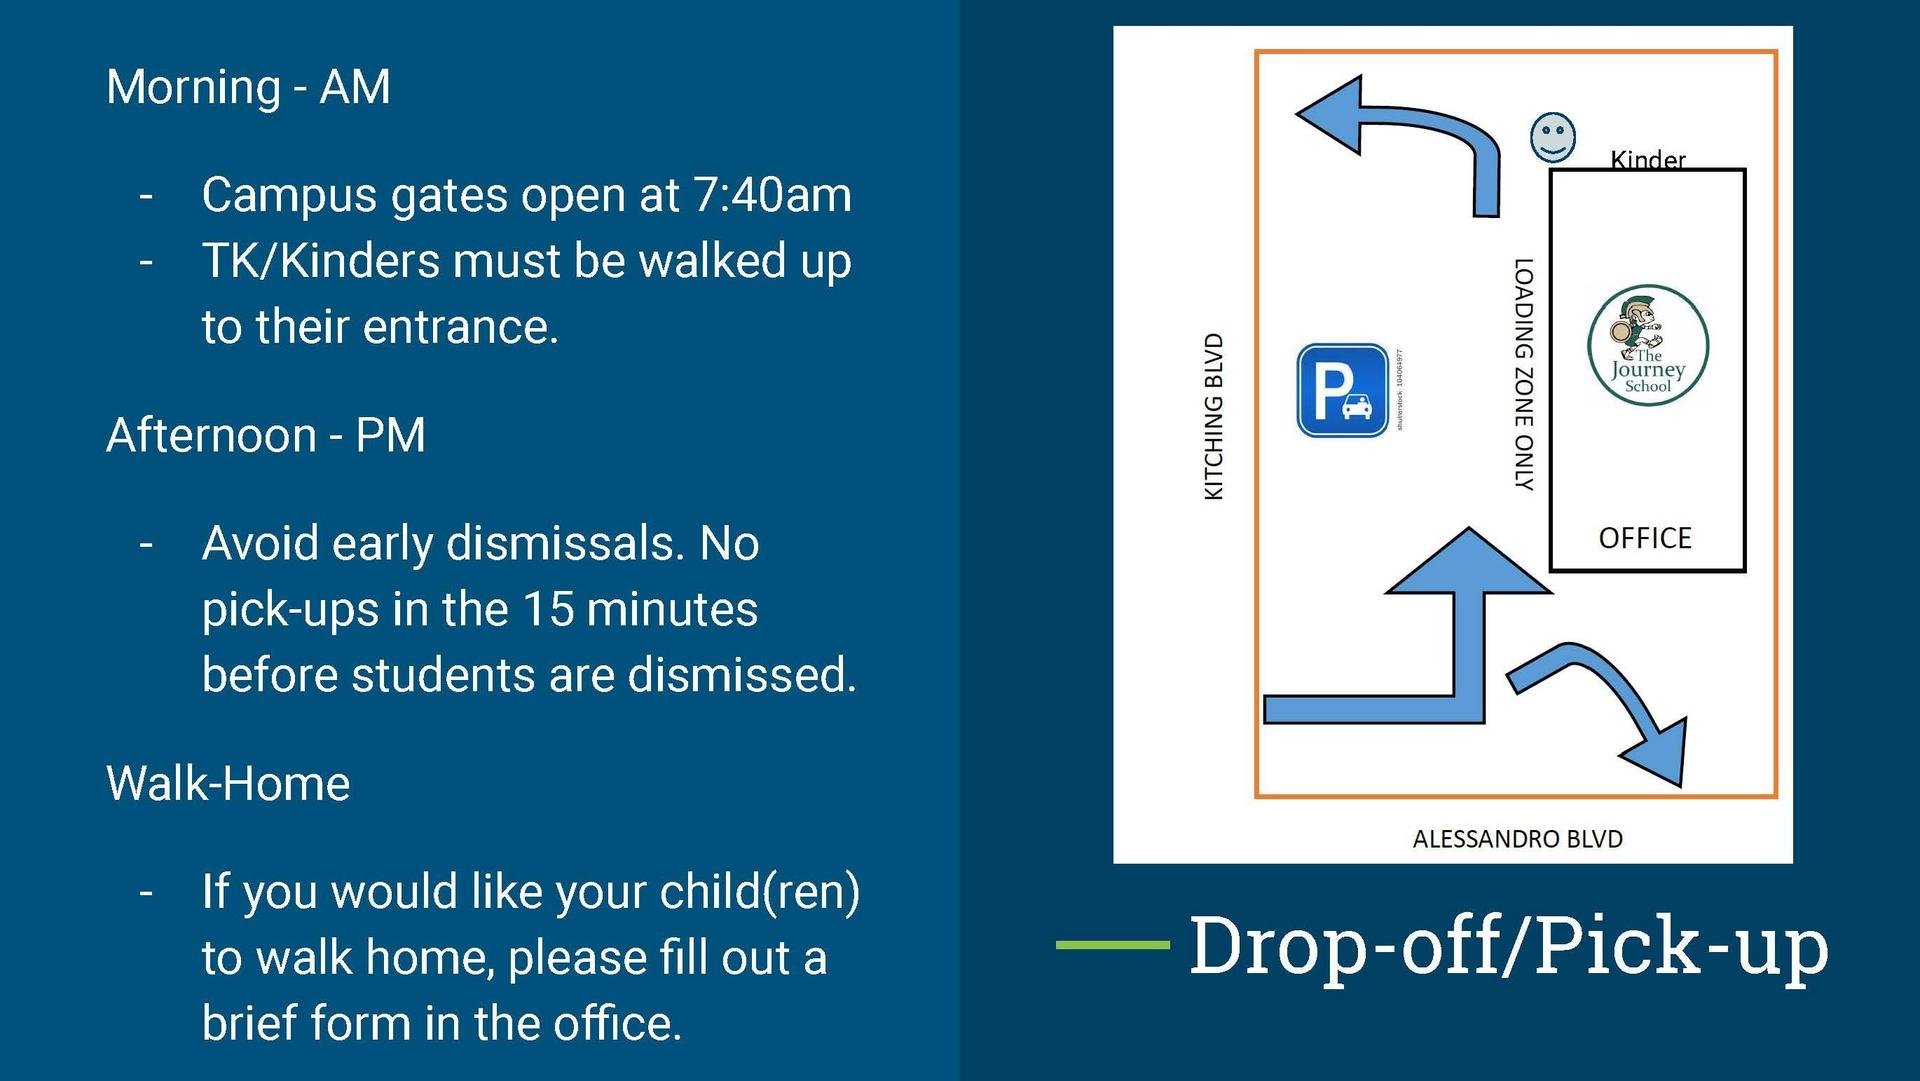 Drop off and pick up map